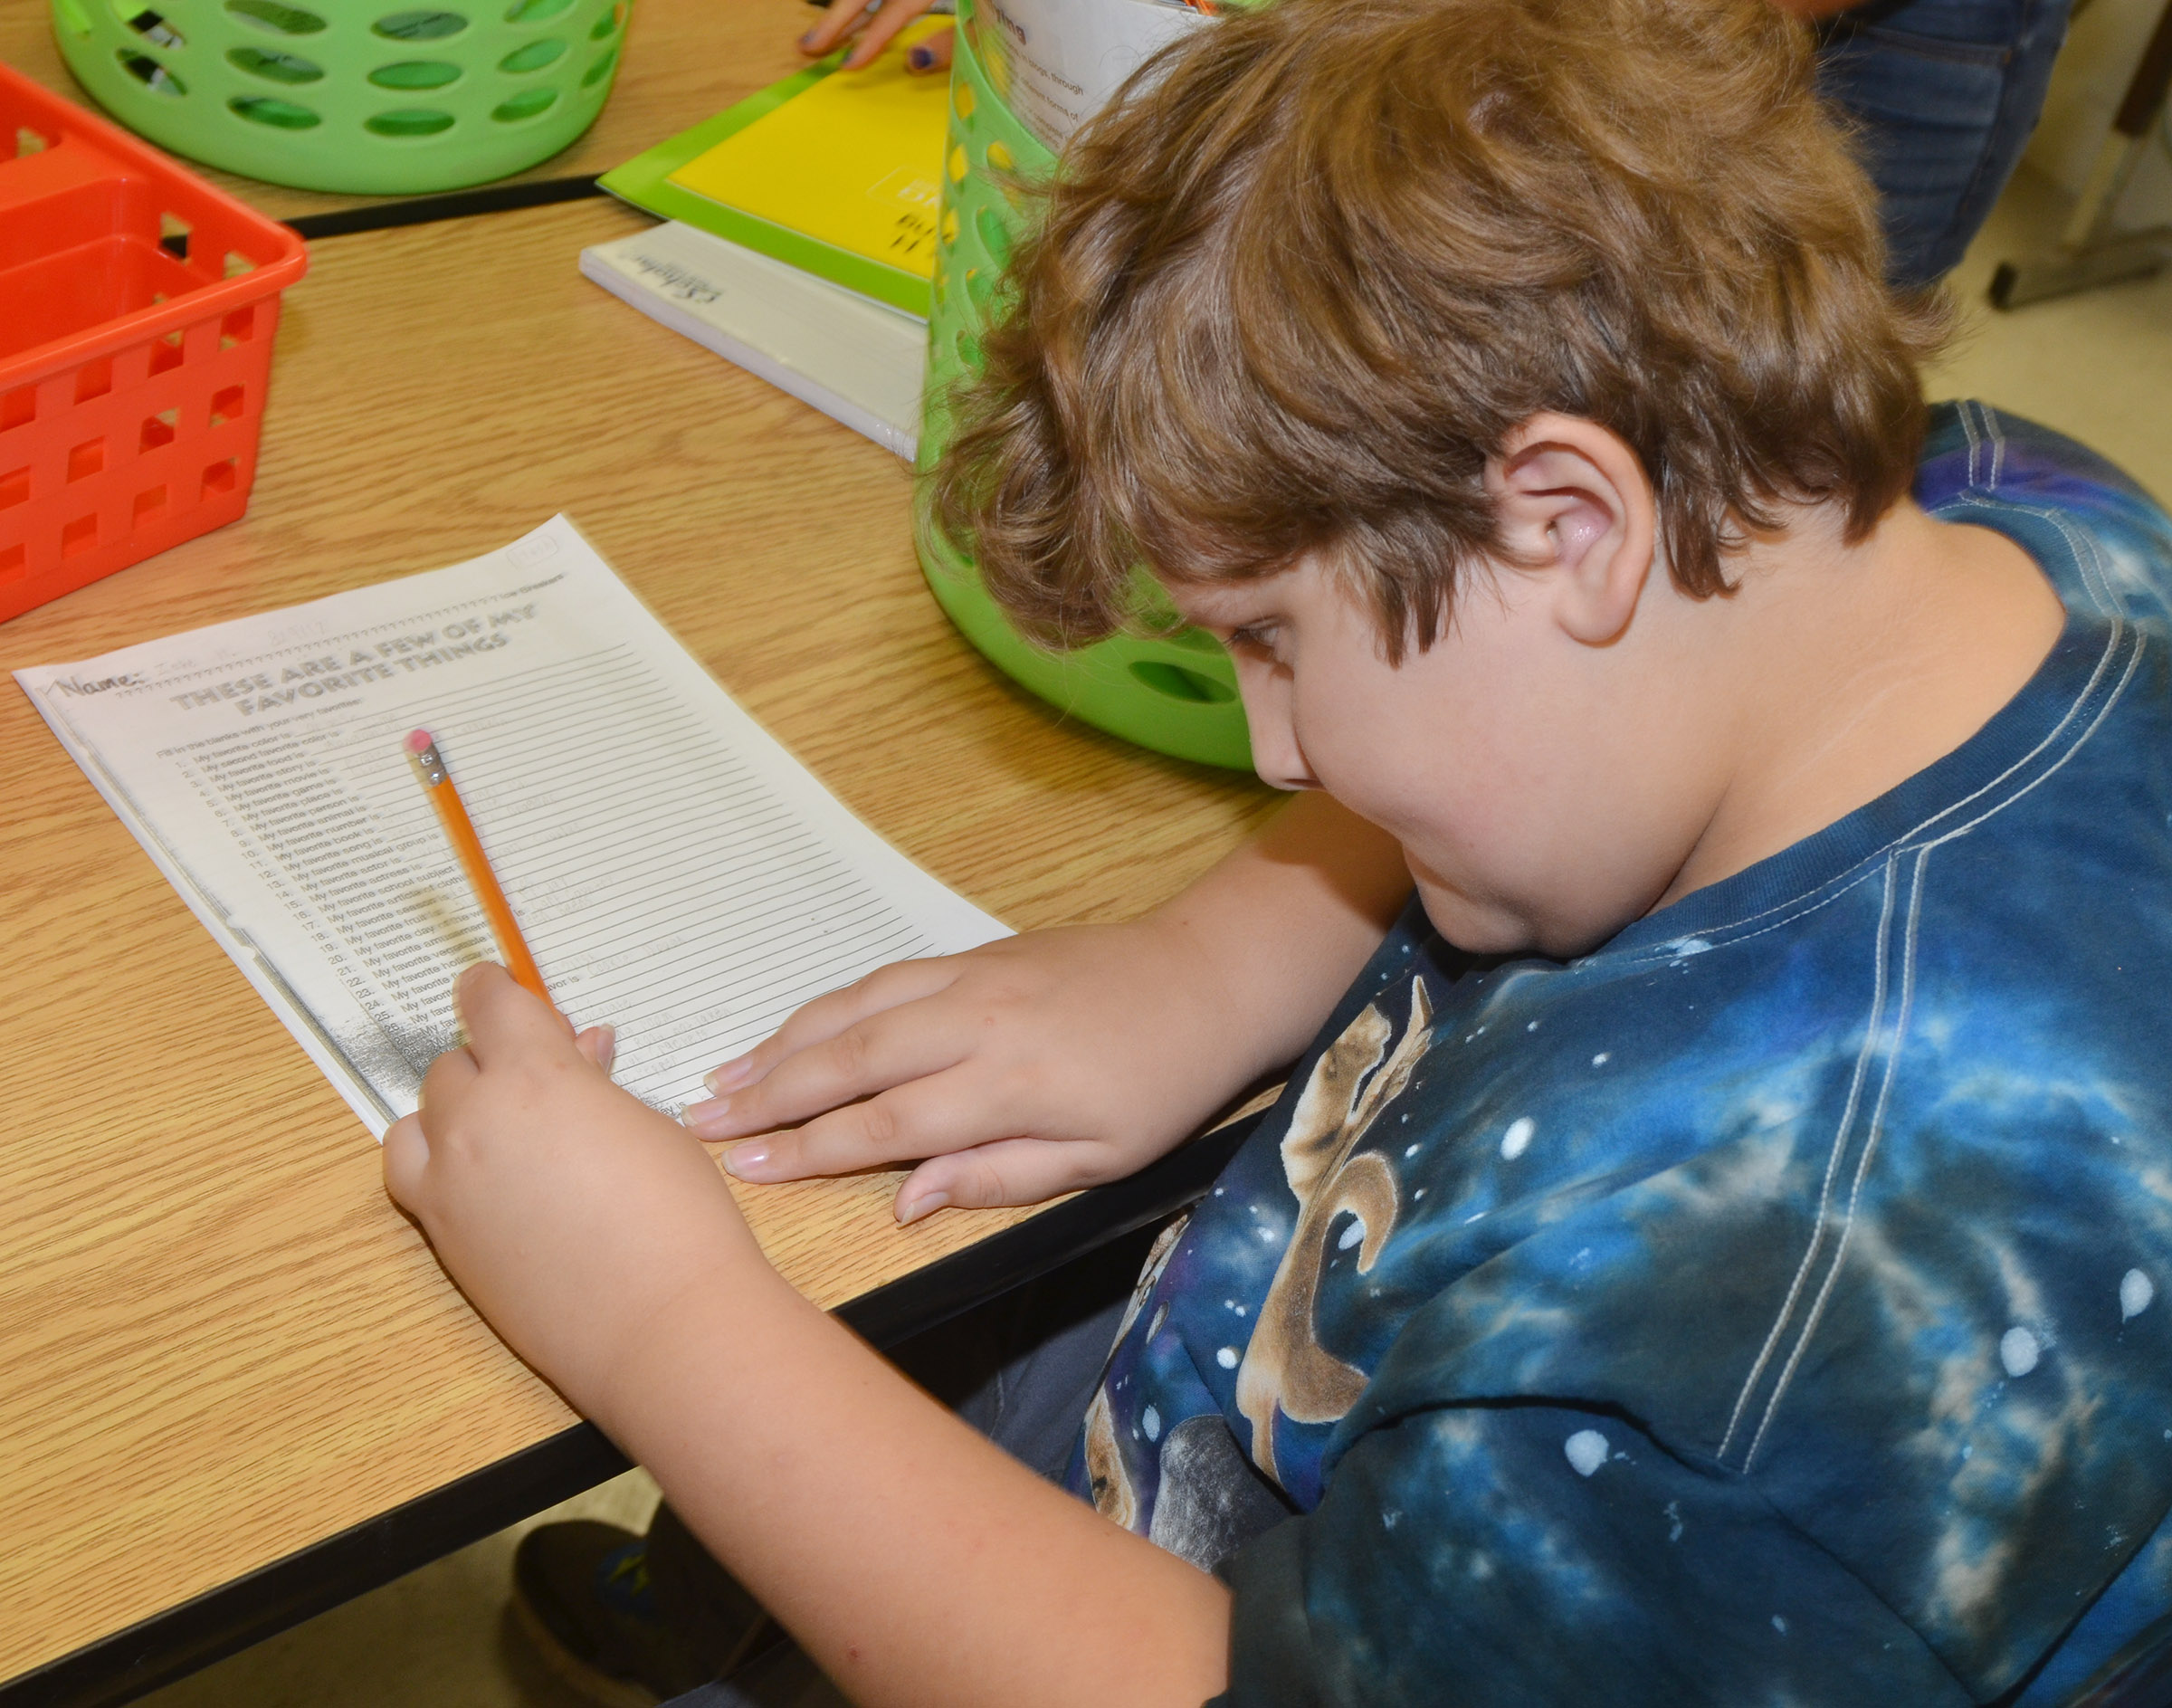 CES fifth-grader Zeke Harris completes a worksheet to help his teacher learn about him.